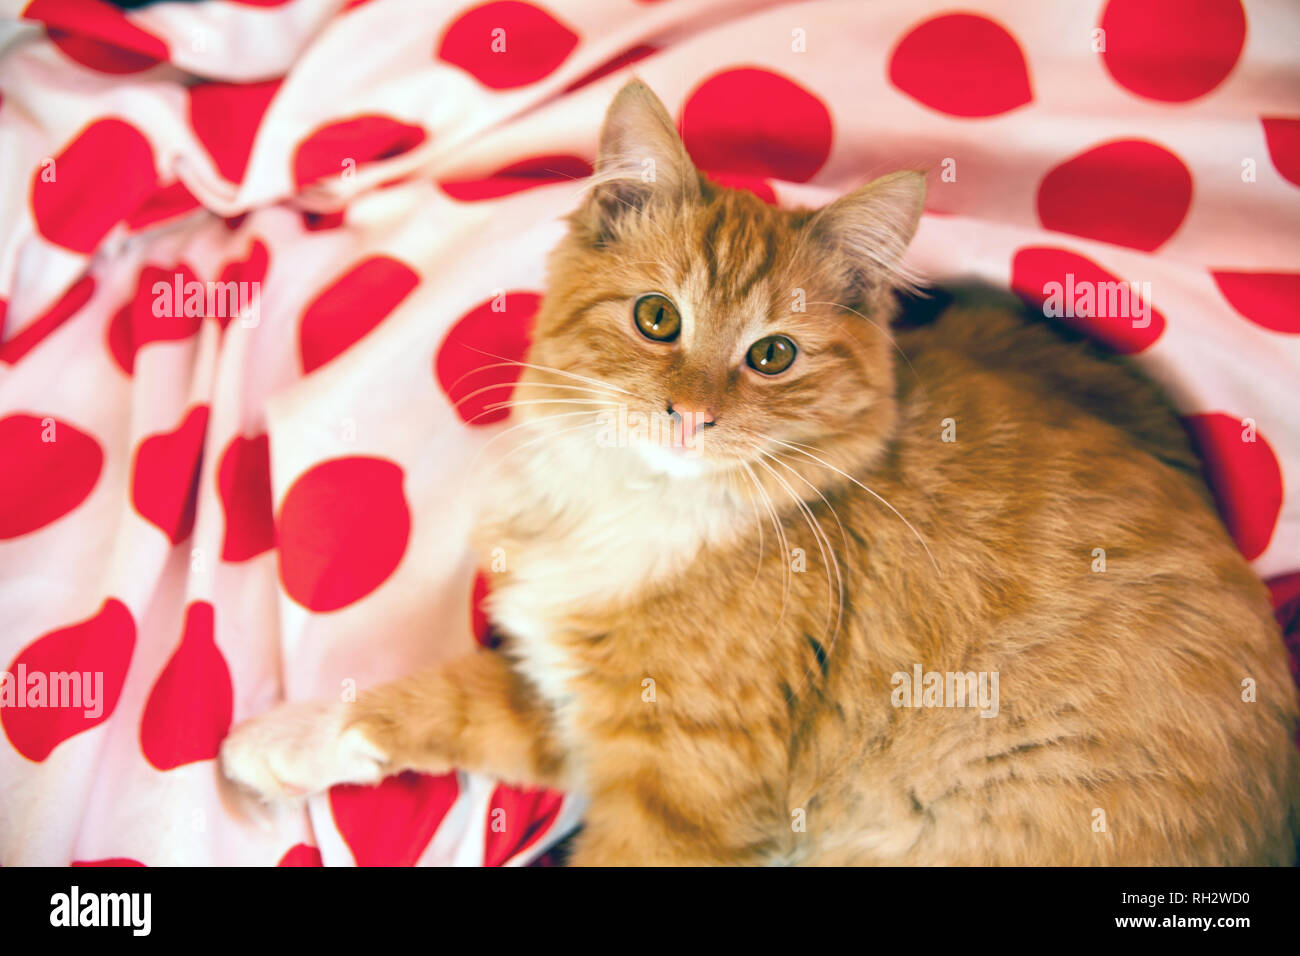 Red Home Small And Cute Cat On Bed Beautiful Well Kept Domestic Cat Retro Climate And Colors Black And White Dots Material Stock Photo Alamy